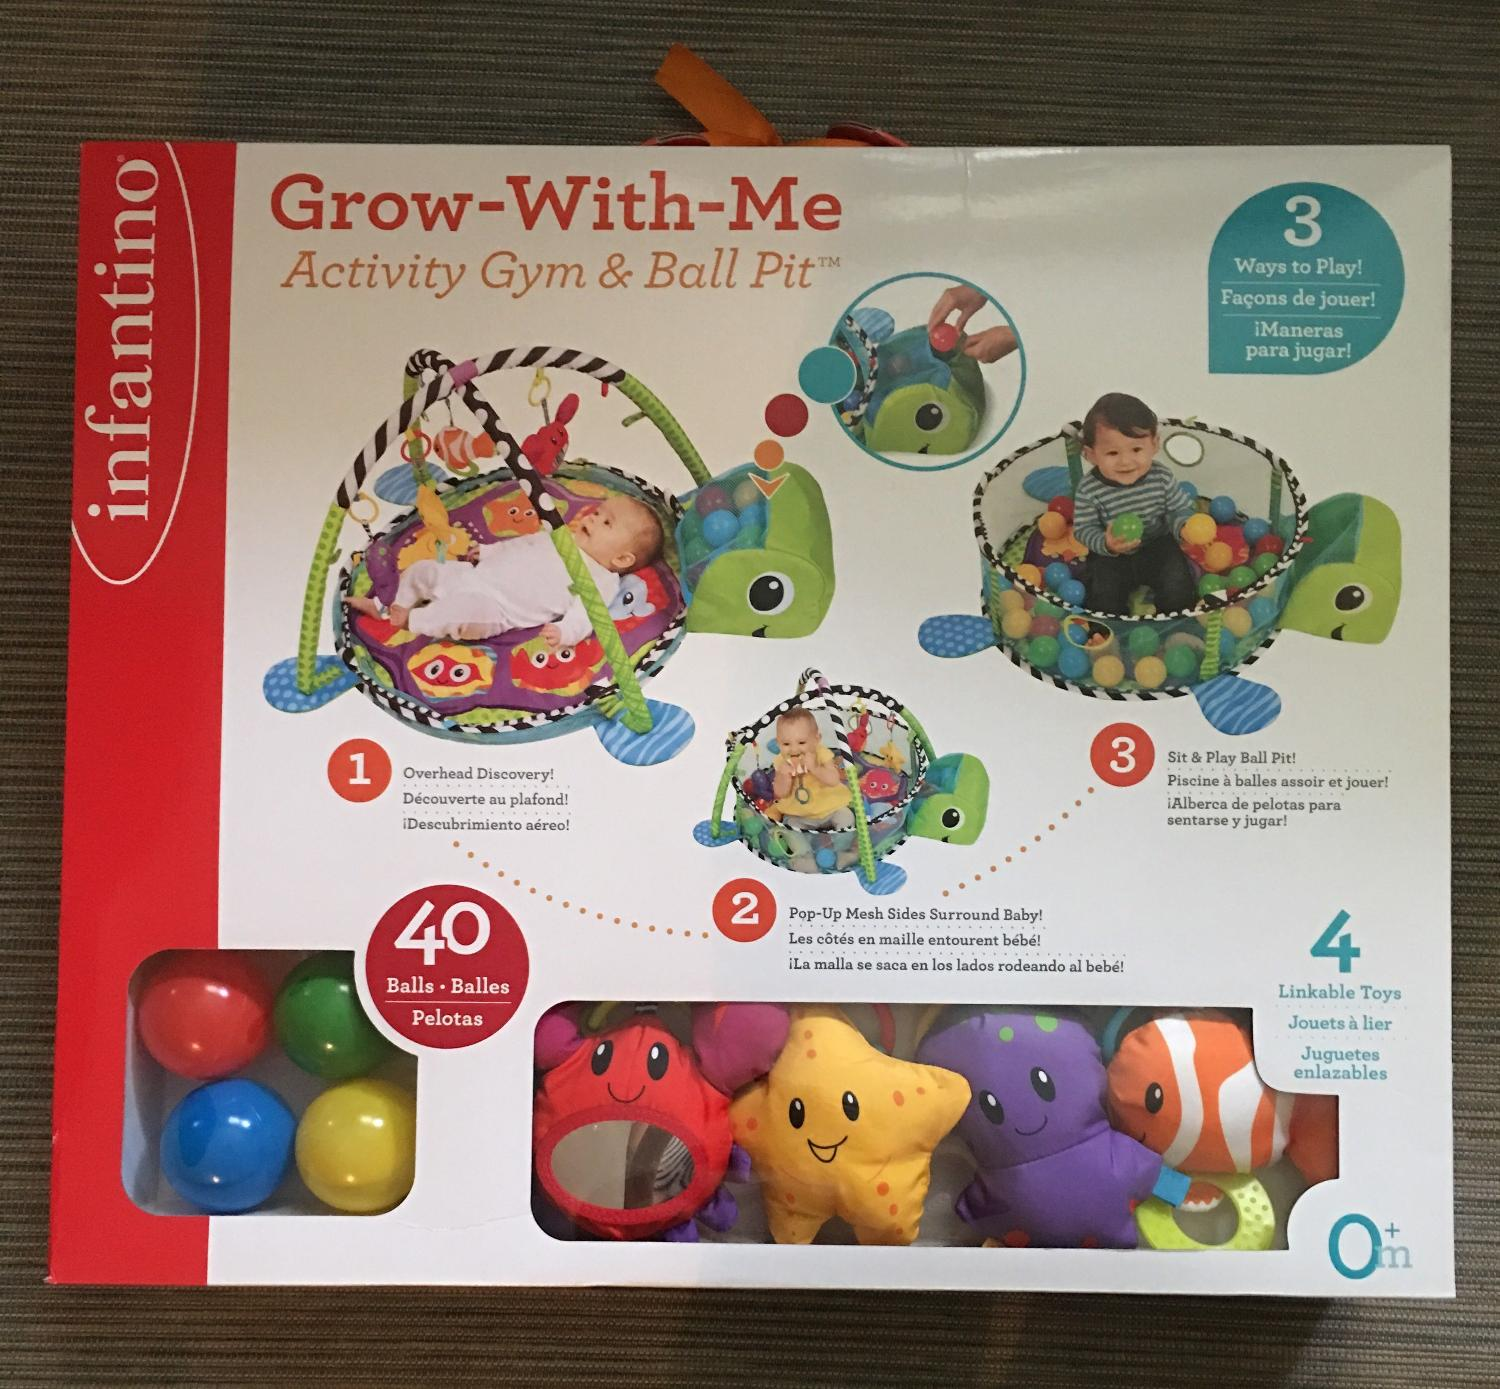 Best bnib infantino grow with me activity gym ball pit for Ball pits near me